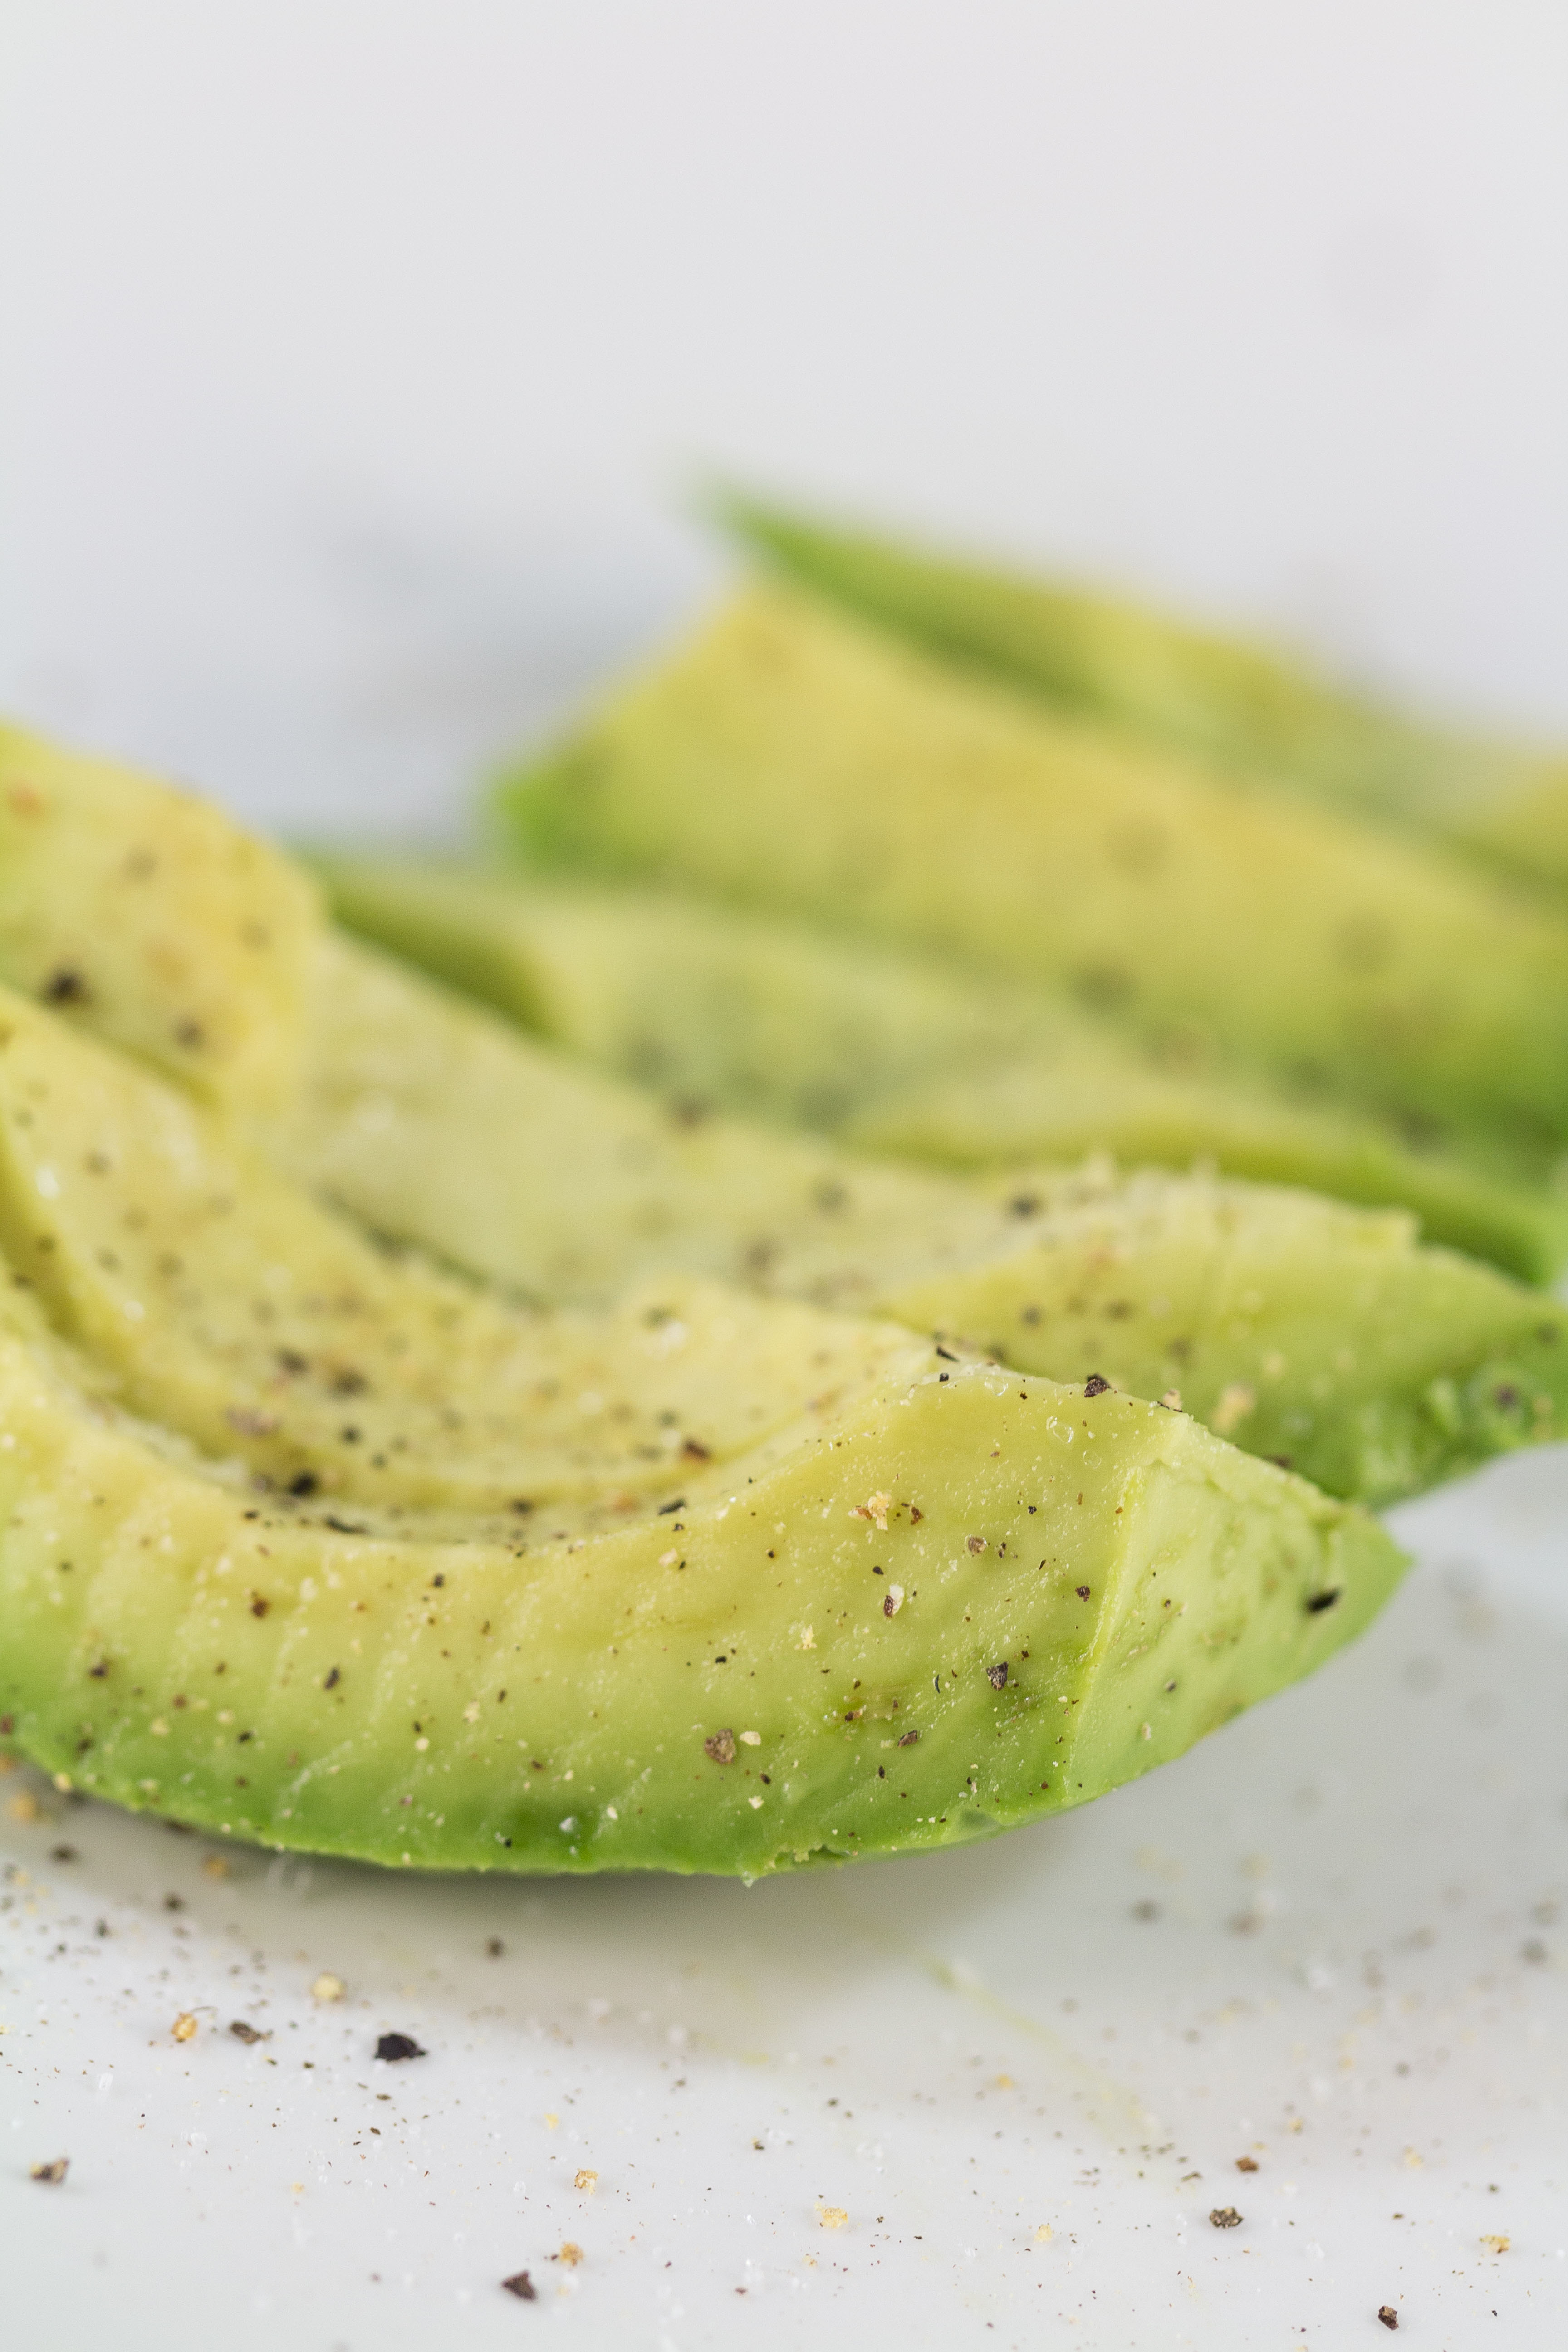 Sliced Avocado With Salt and Pepper | https://www.roseclearfield.com